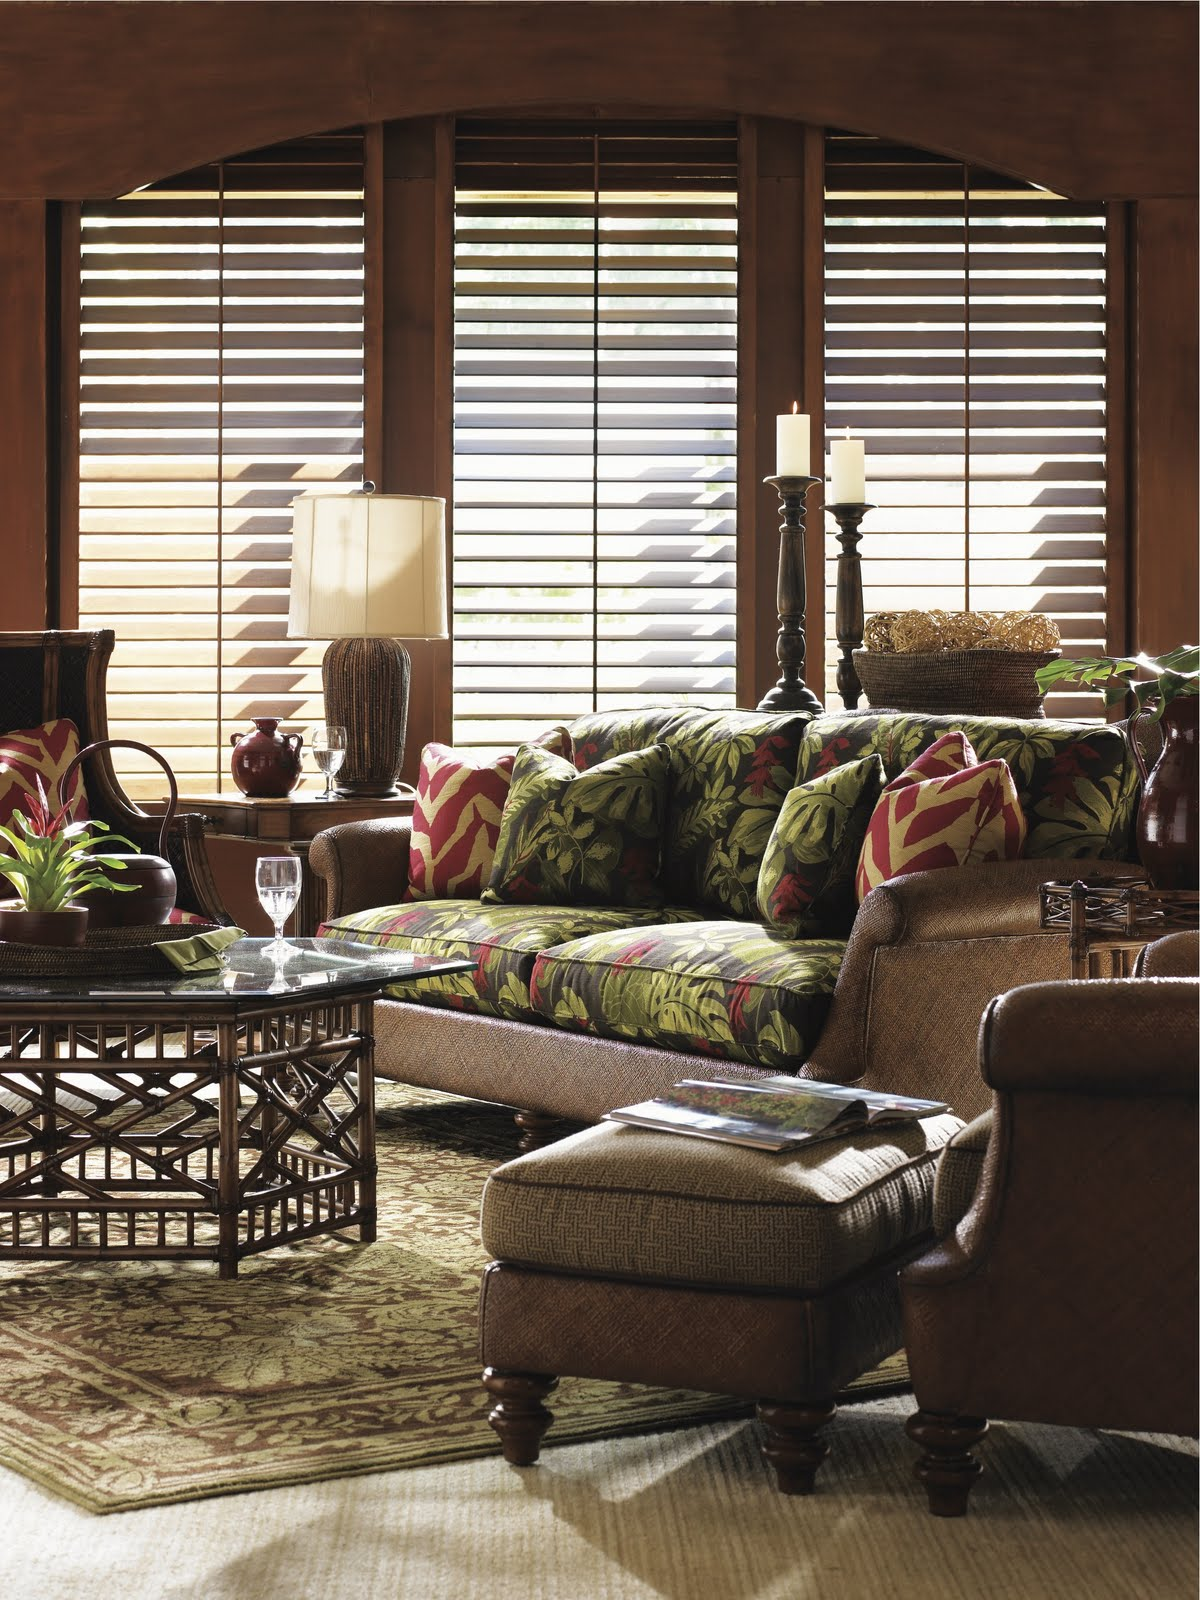 Tommy Bahama Cooler Decorating Ideas For Living Room Tropical Design .